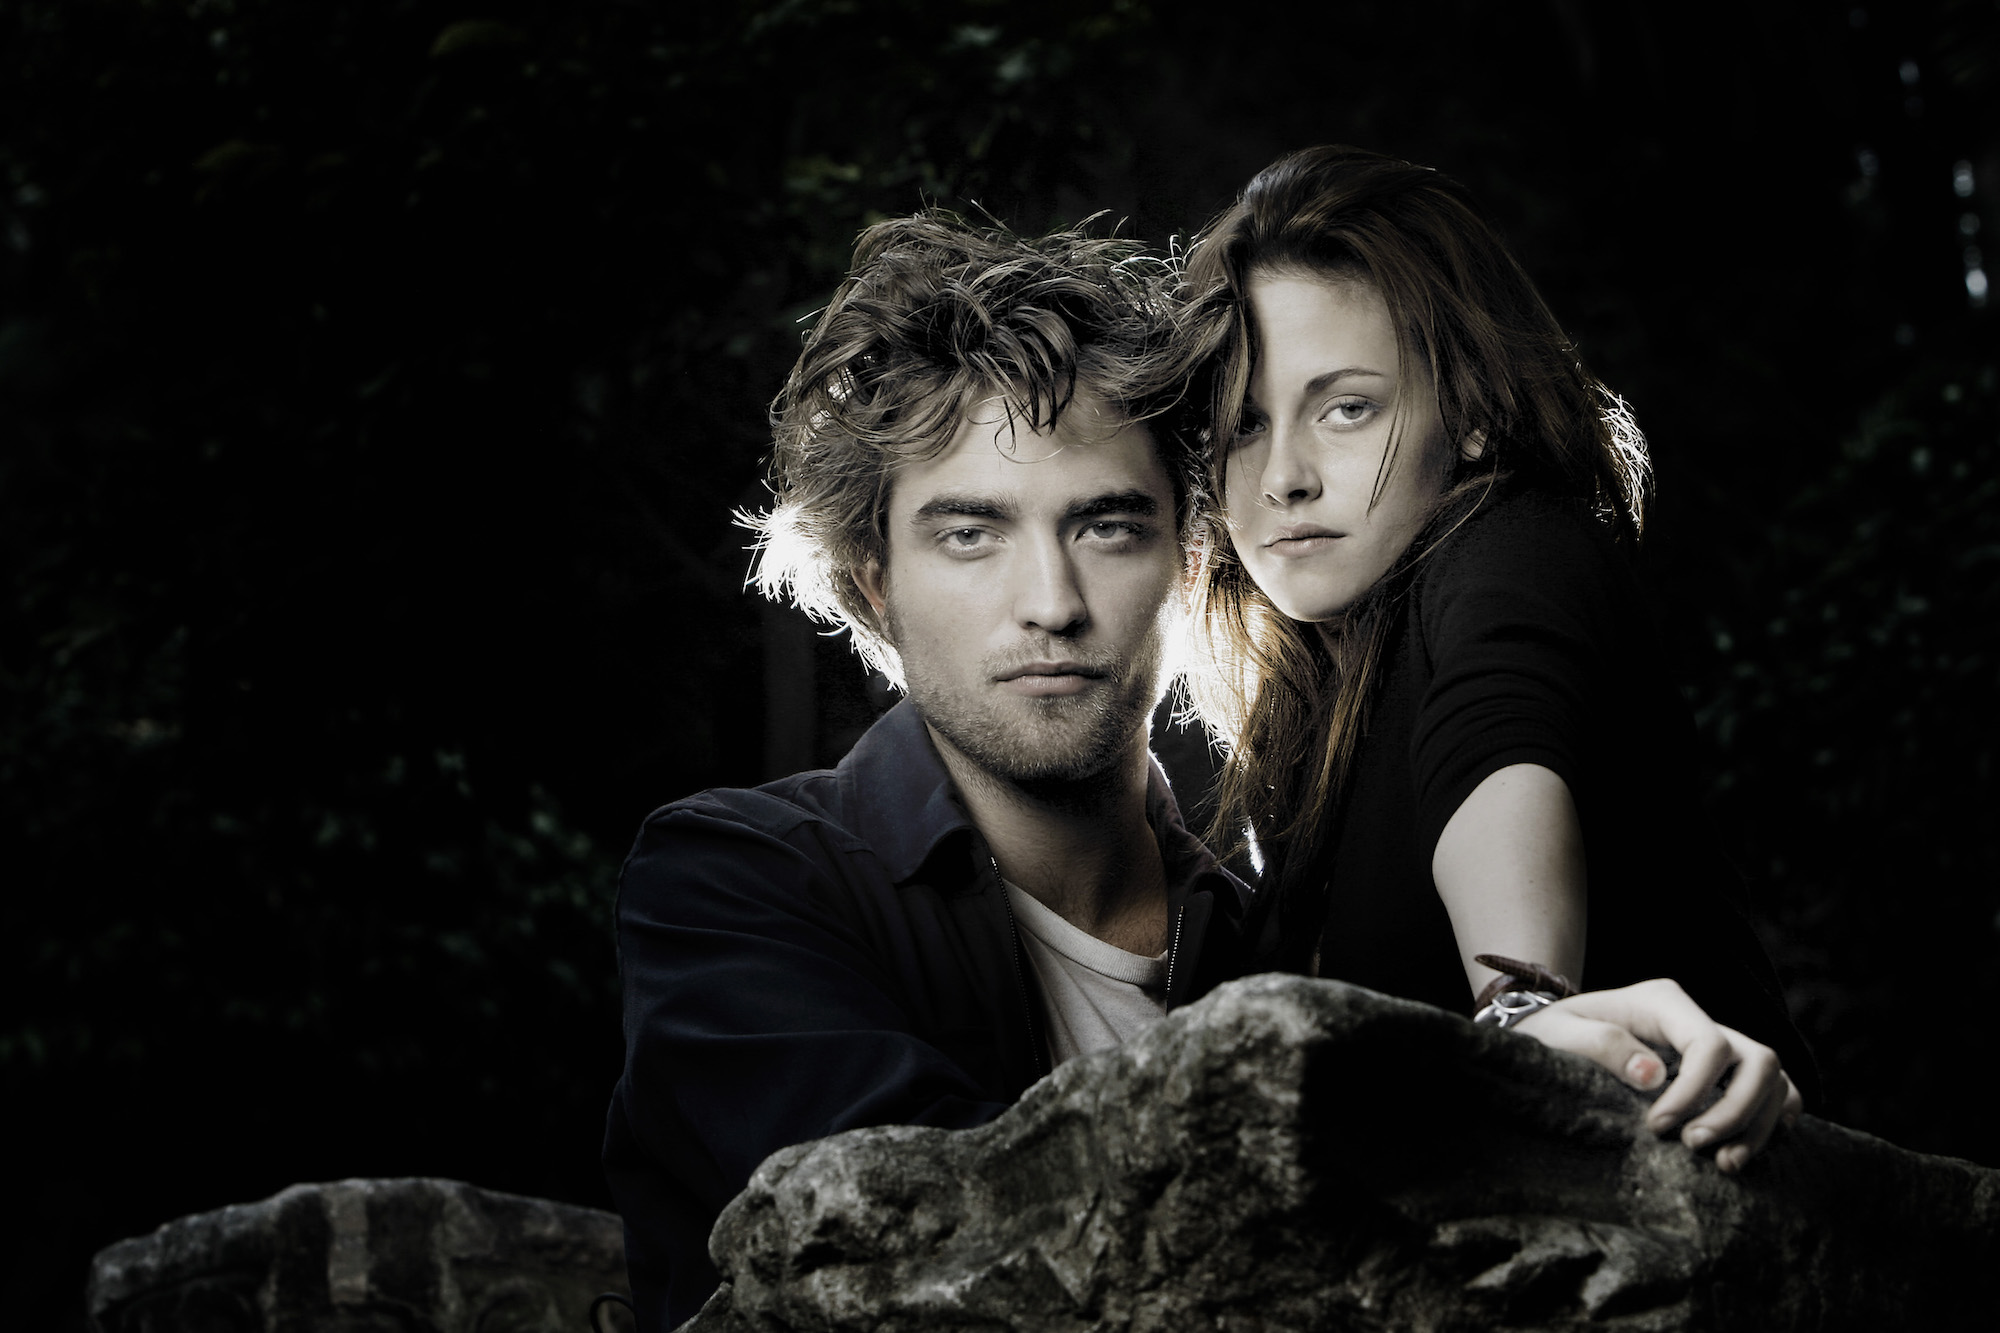 Kristen Stewart and Robert Pattinson pose for the 'Twilight' Portrait Session at the 'De Russie' hotel on Oct. 31, 2008 in Rome, Italy